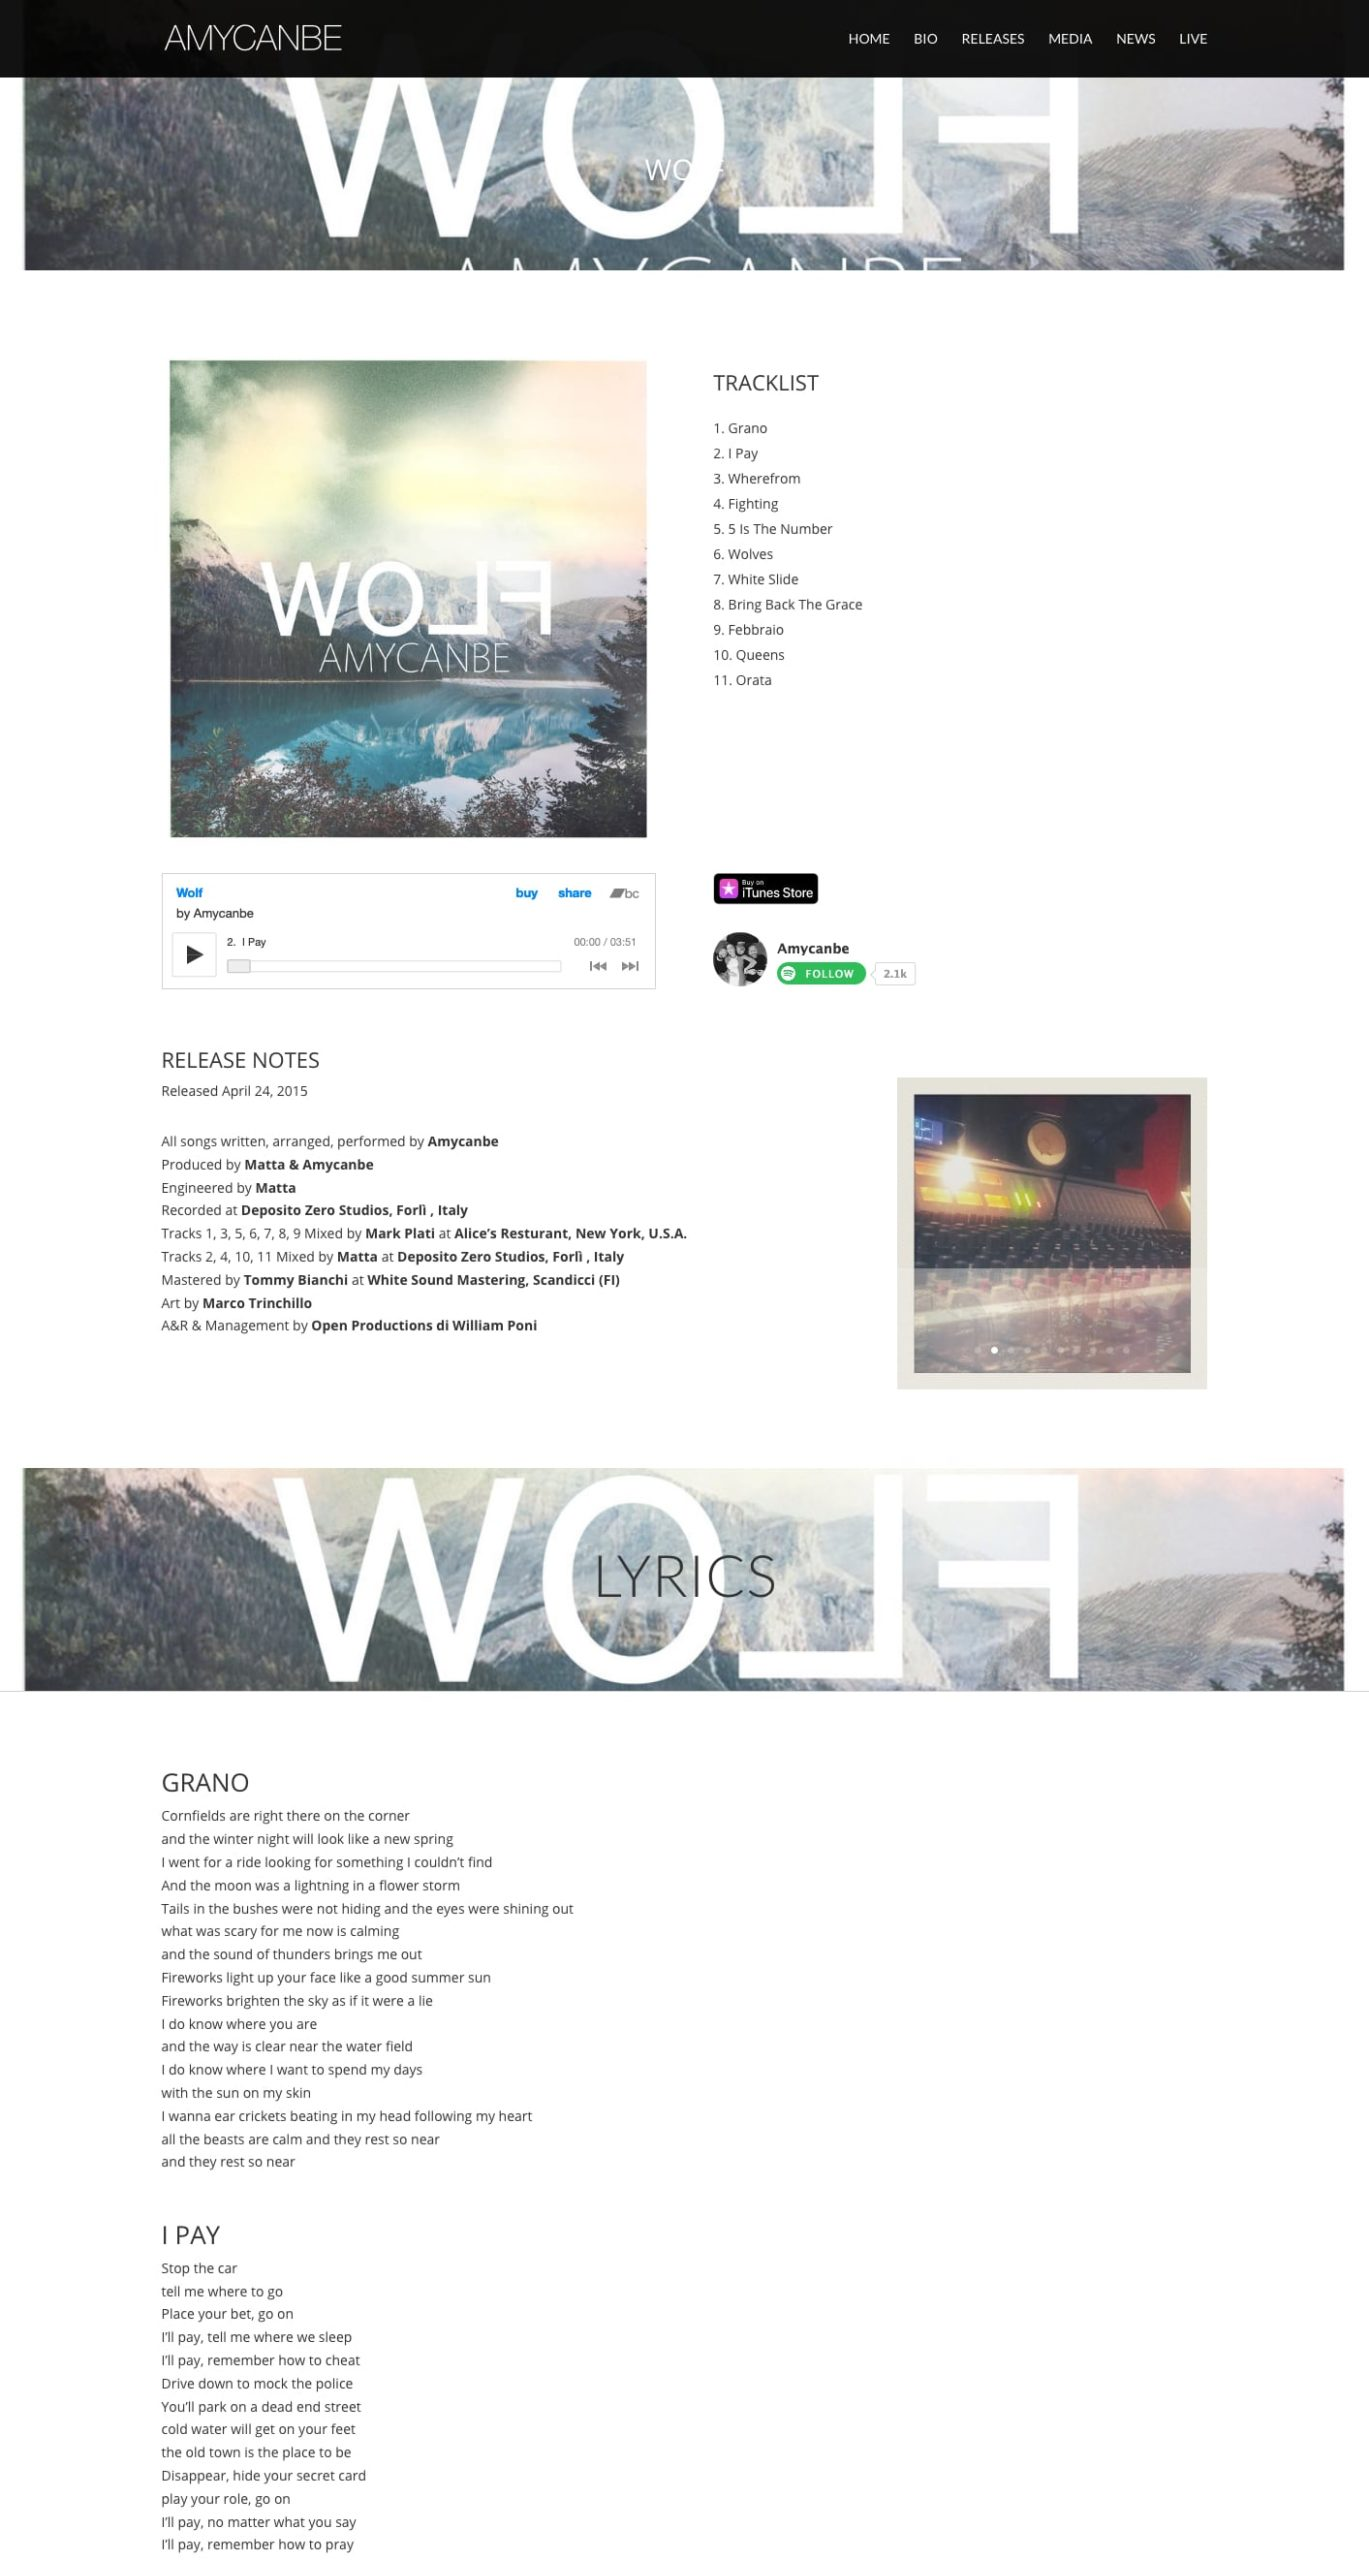 Amycanbe Wolf release page screenshot